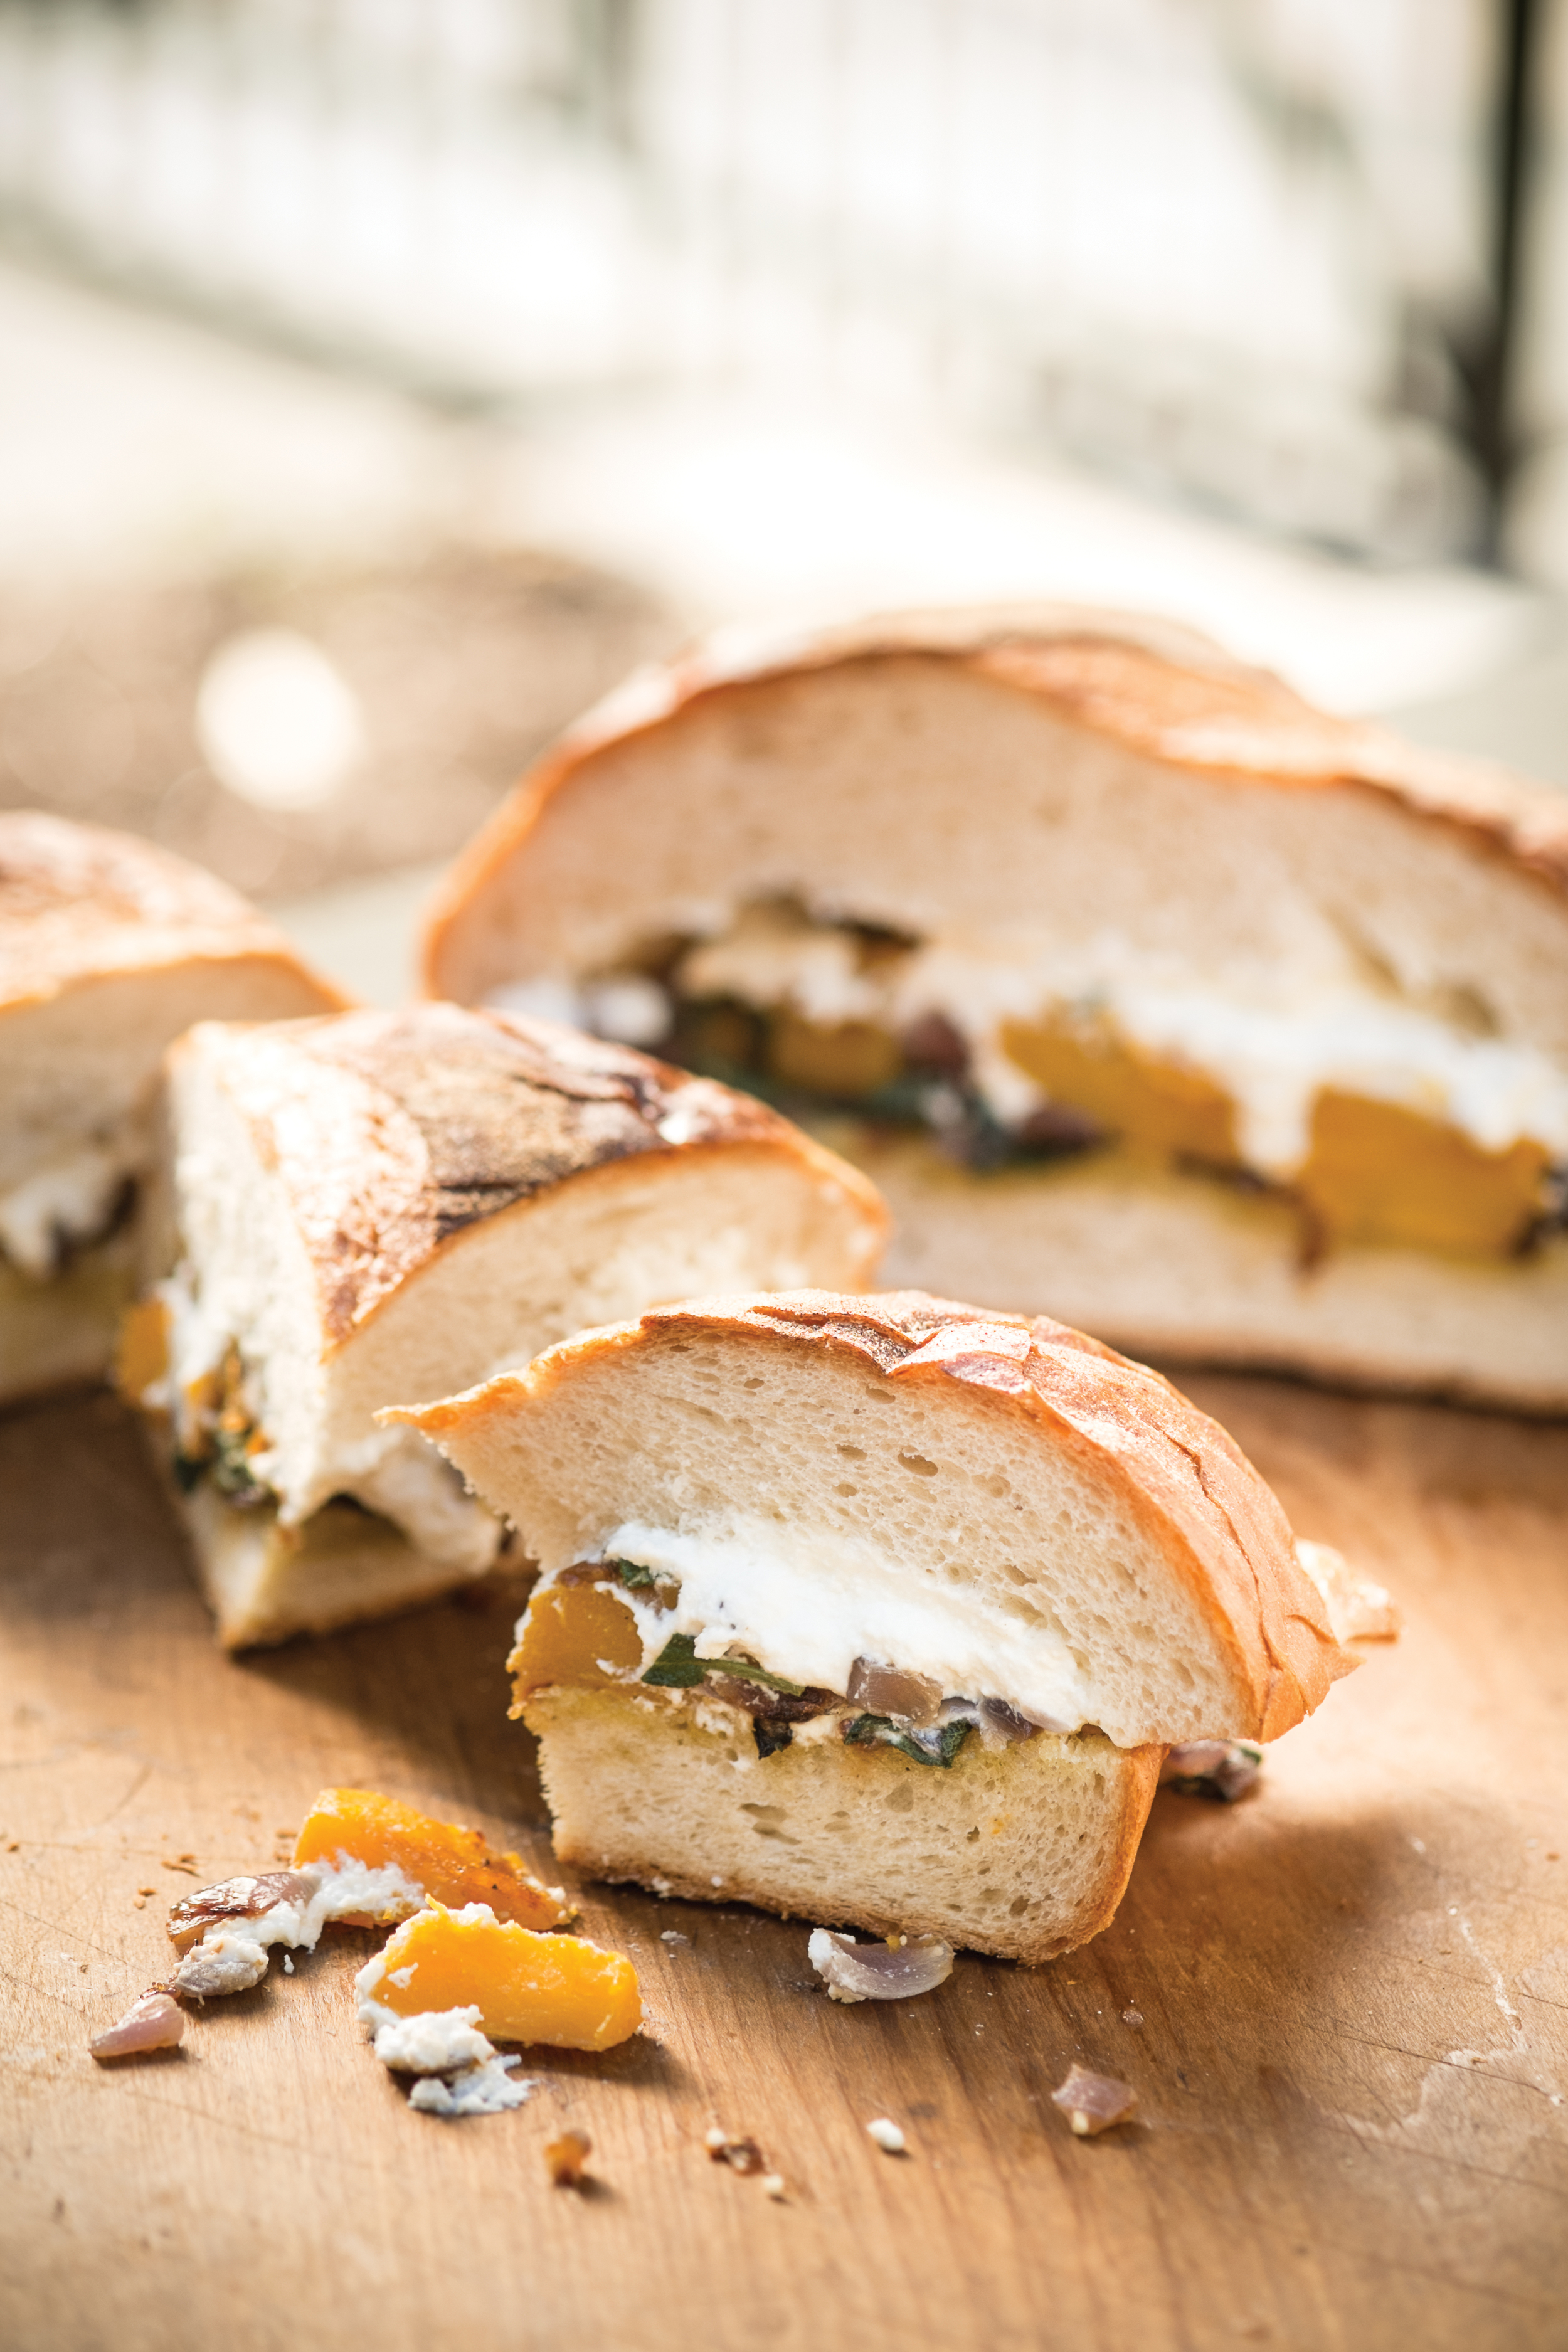 Grill-Roasted Butternut Squash, Red Onion, Sage and RIcotta Loaf; Photo by Steve Legato